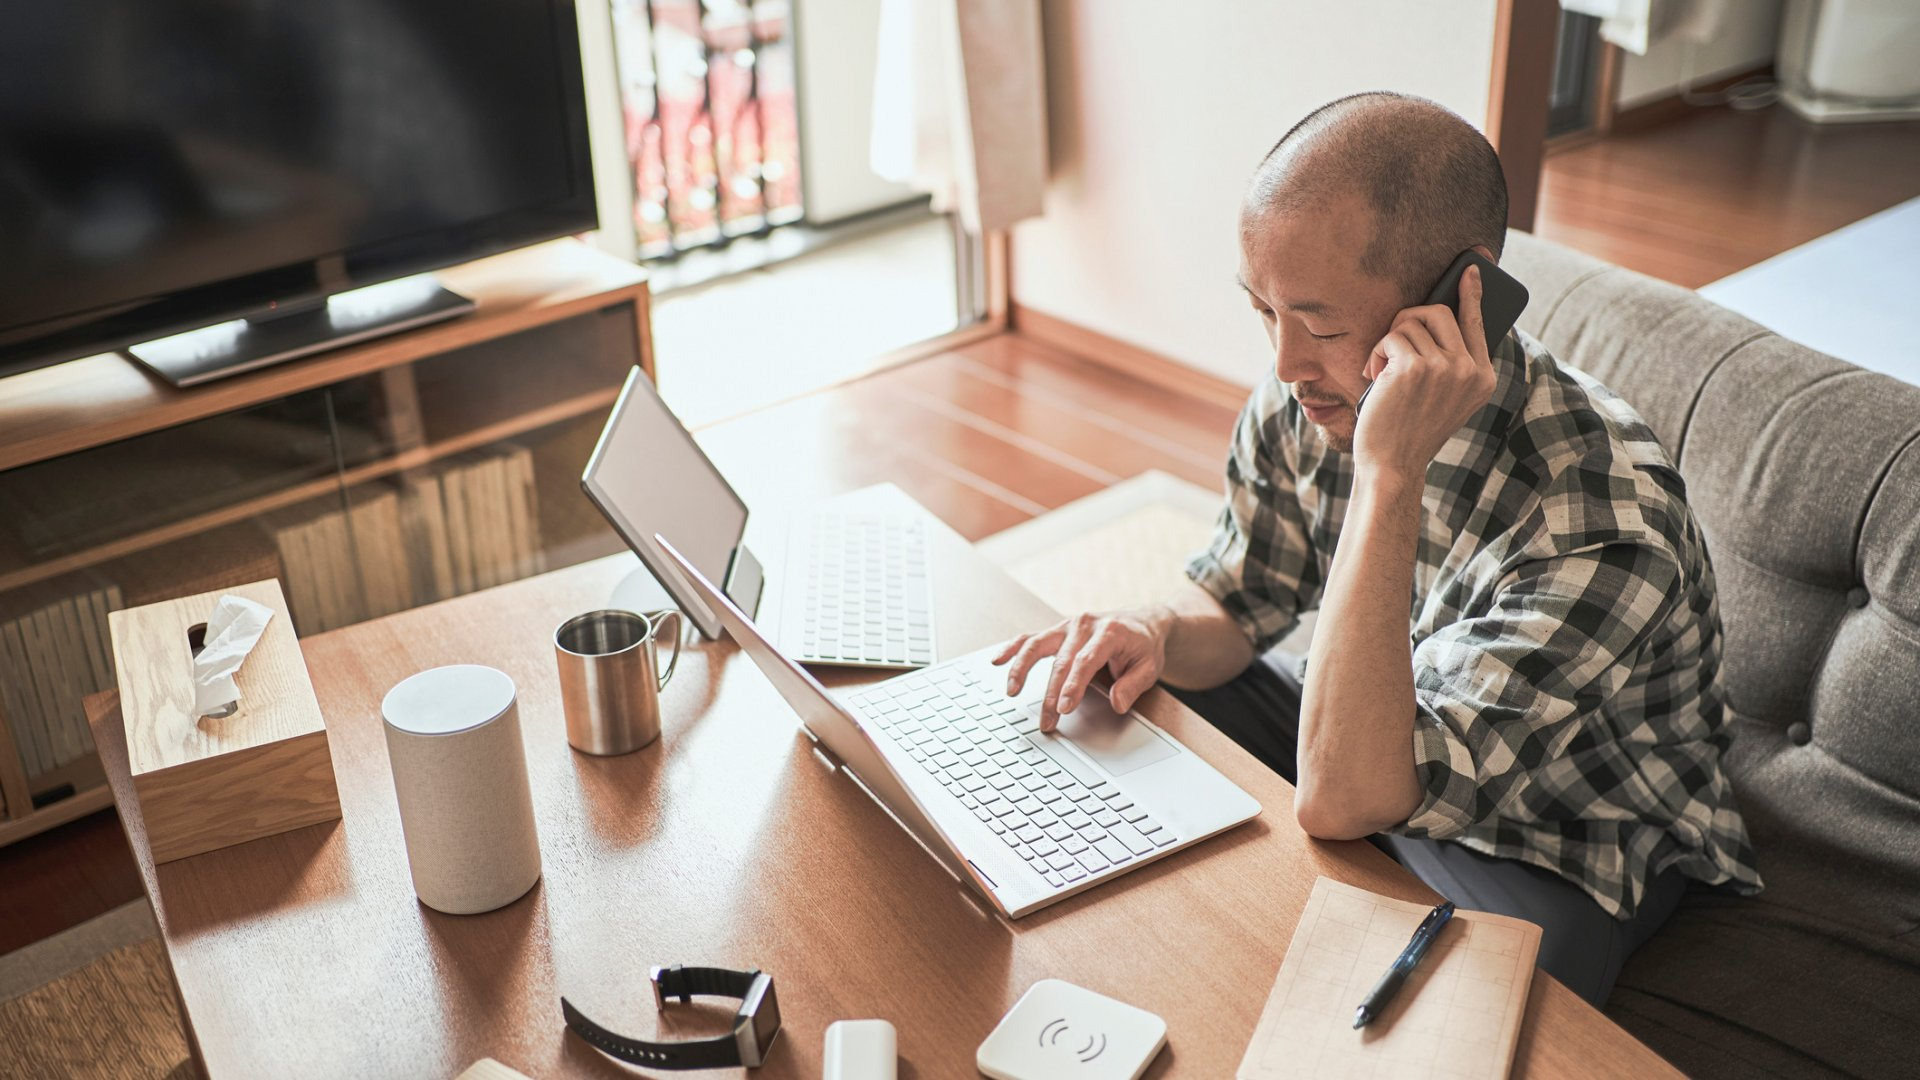 High-Performing Remote Teams Have These Characteristics